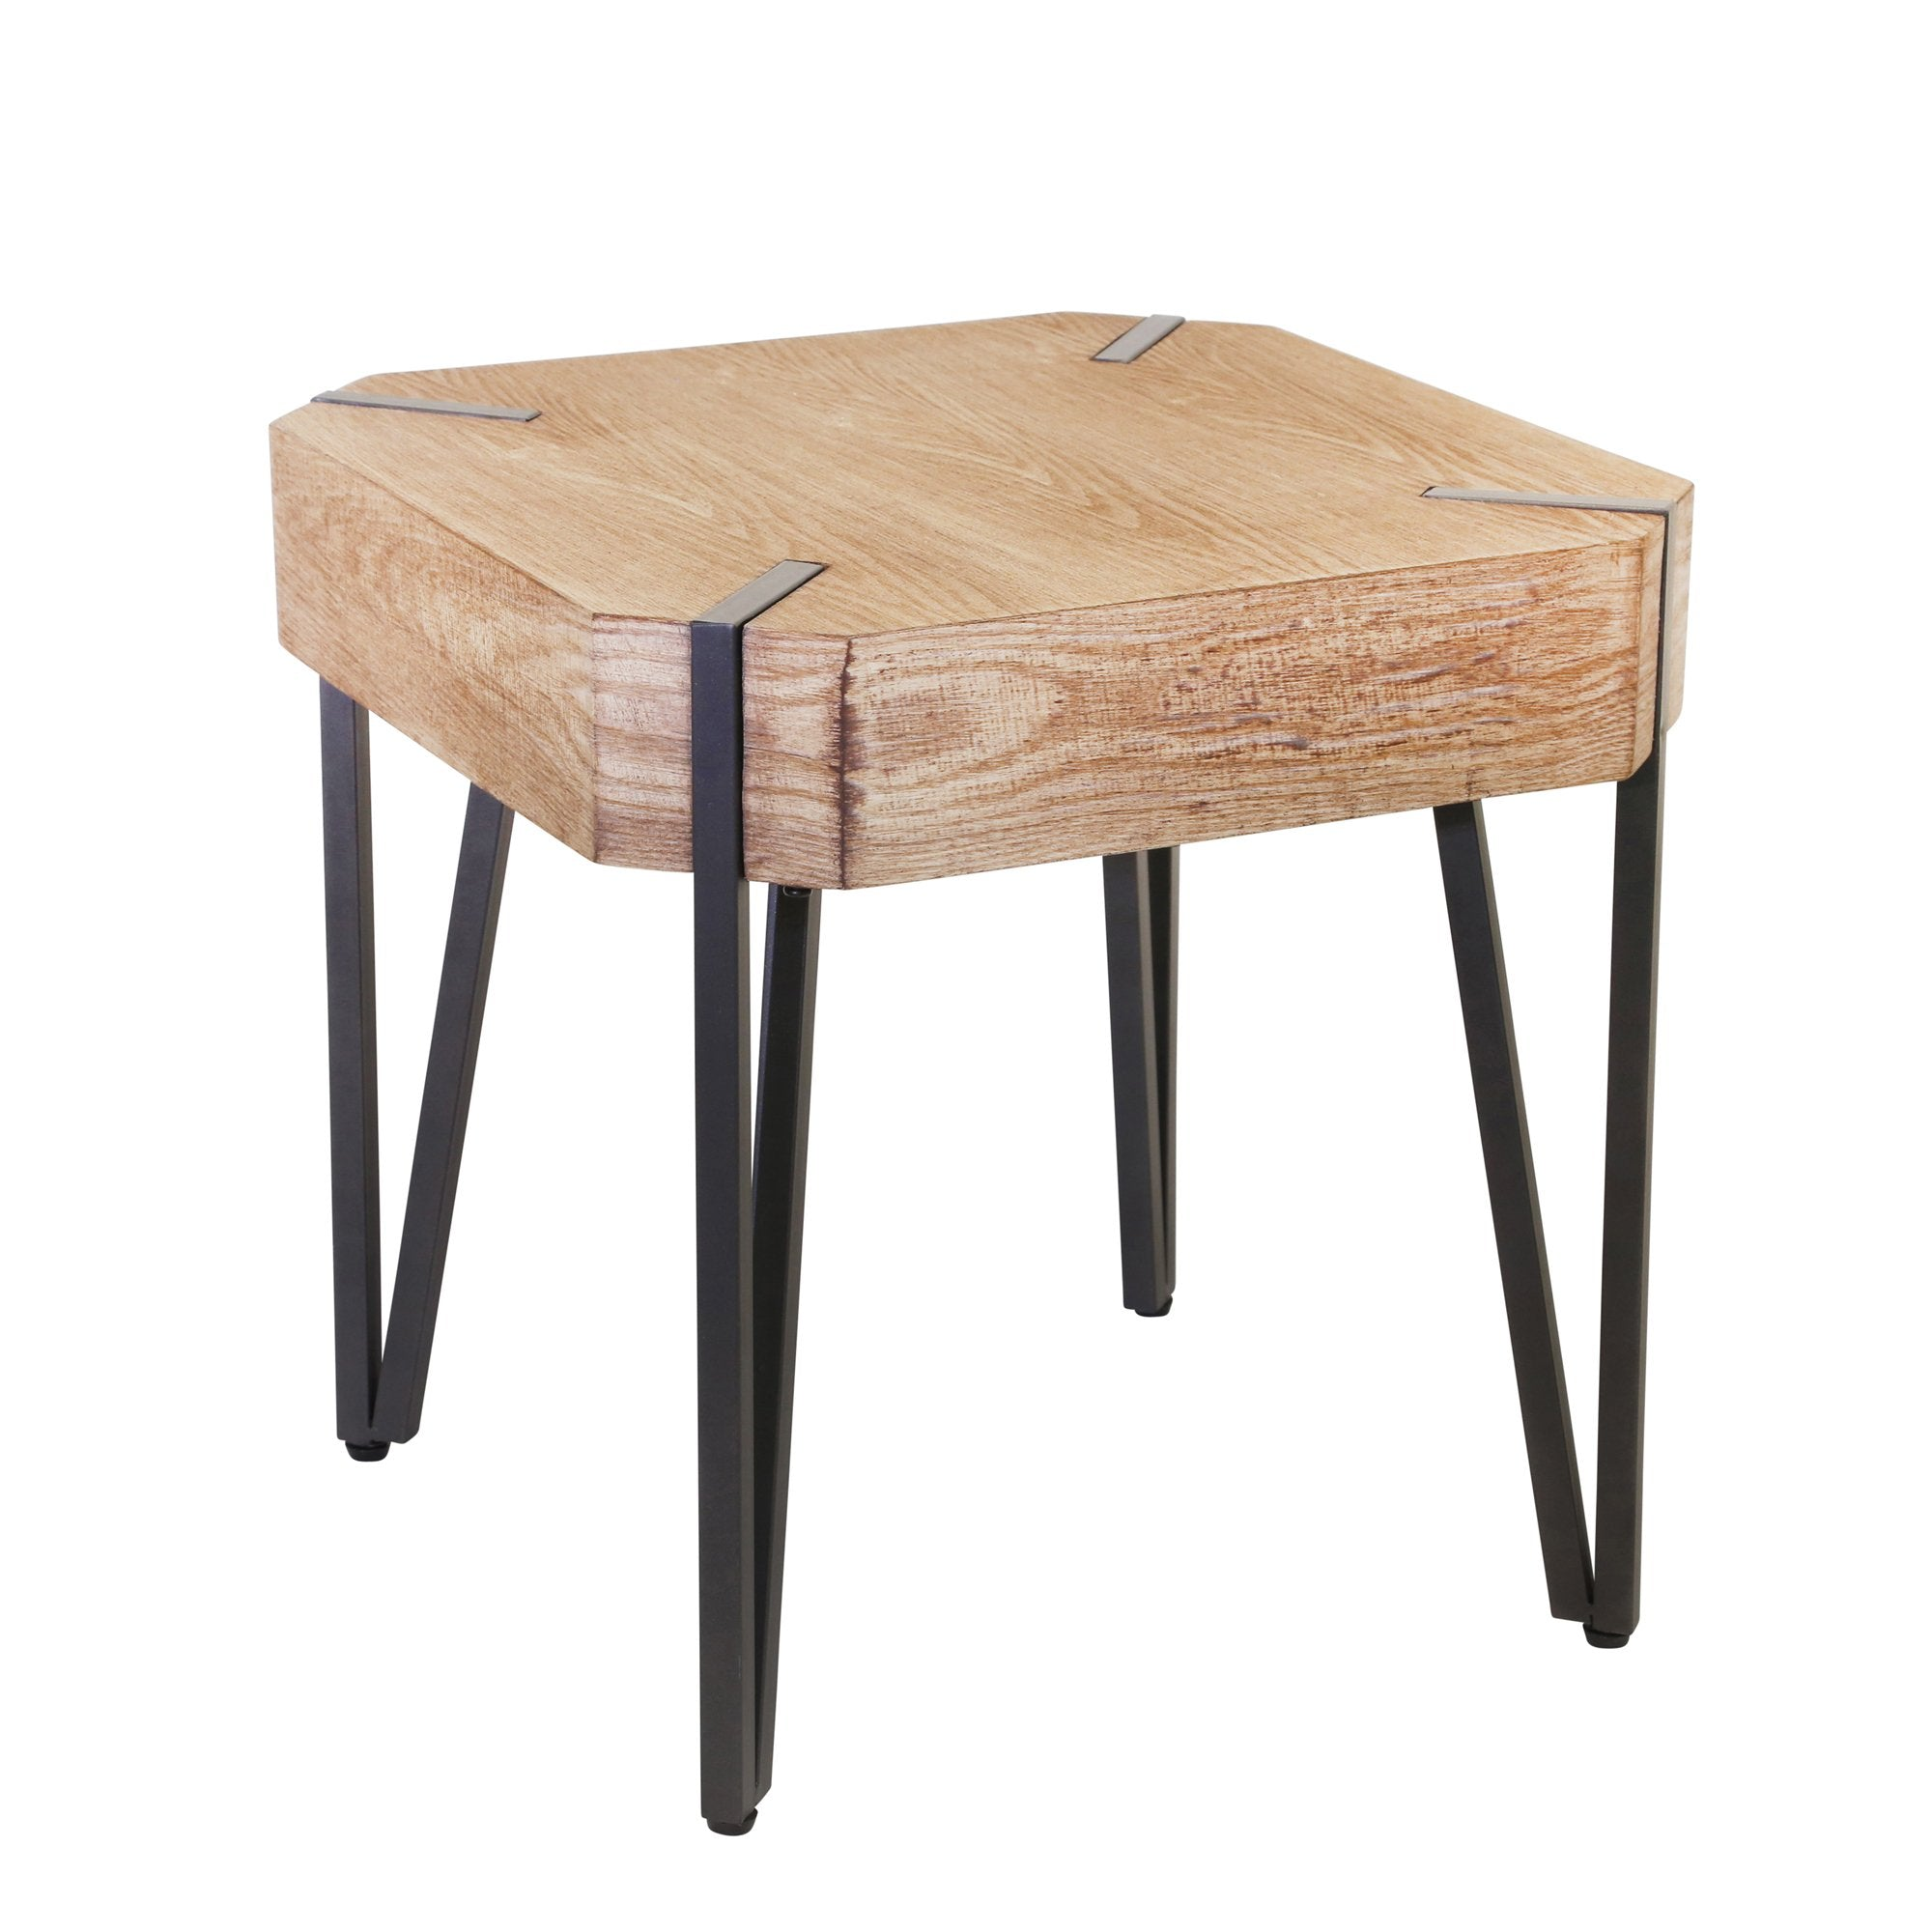 Rustic Wooden Side Table - Shop Table - DARRA HOME